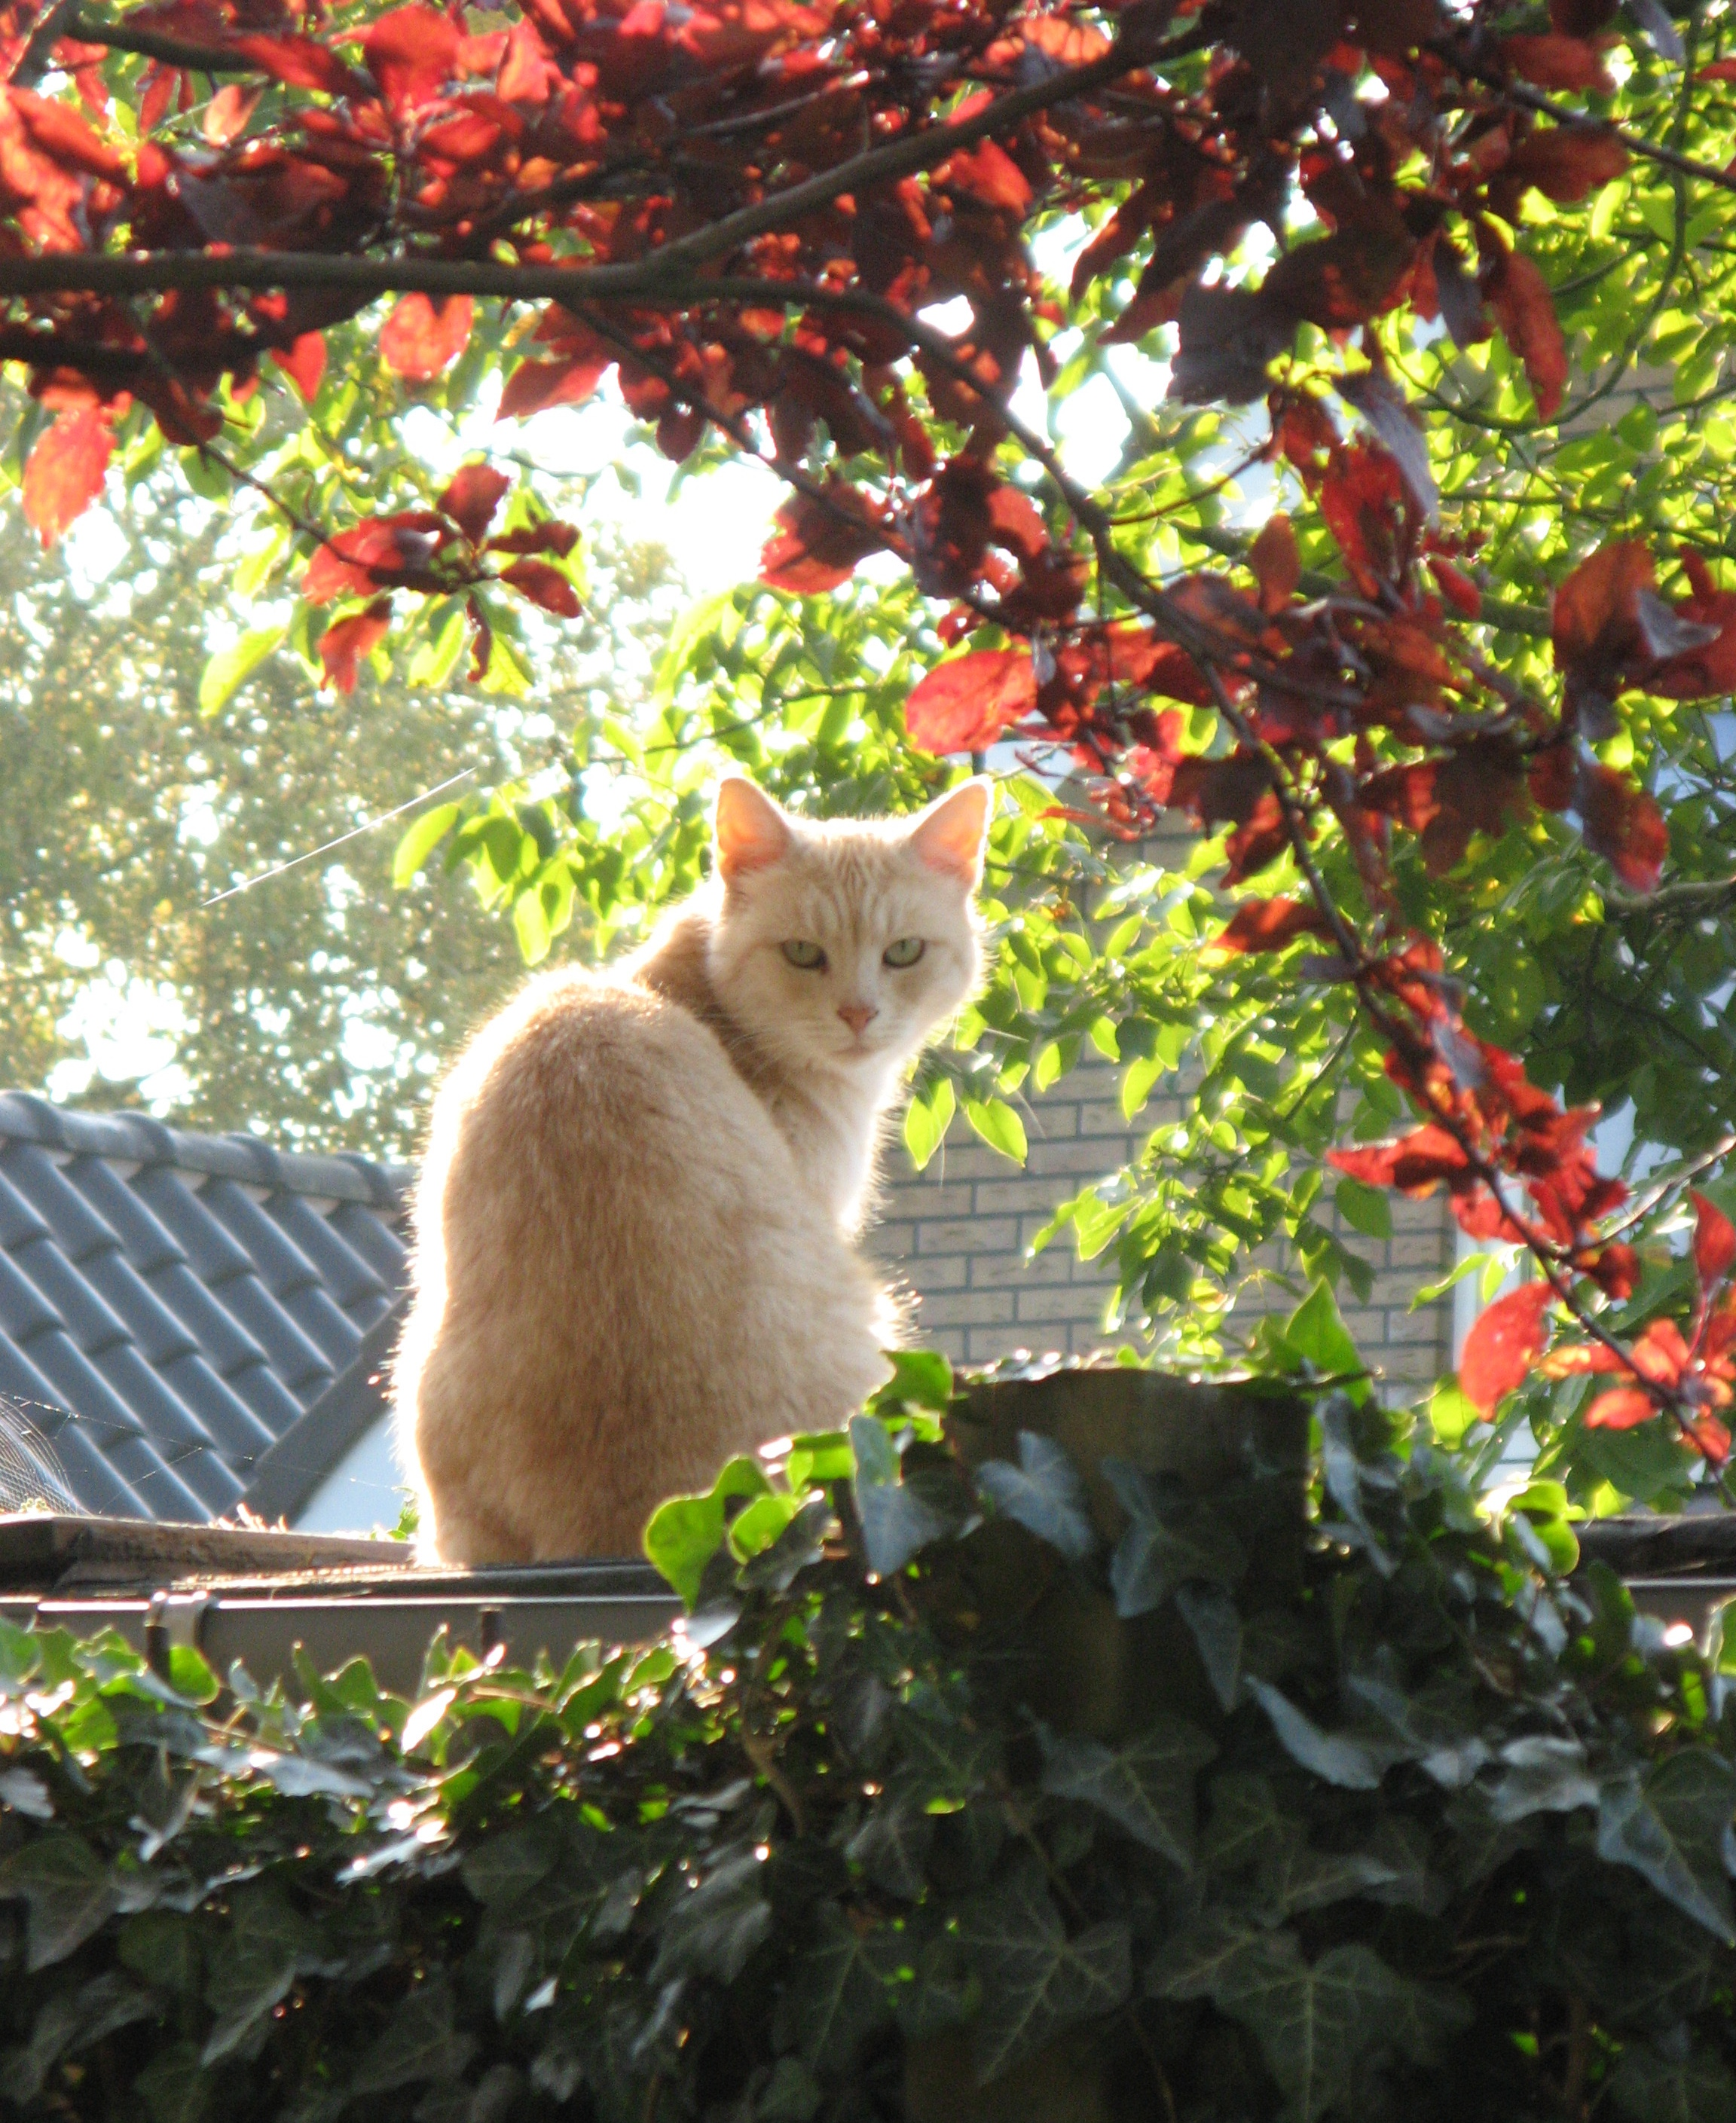 THE MAGICAL MISSING CAT….